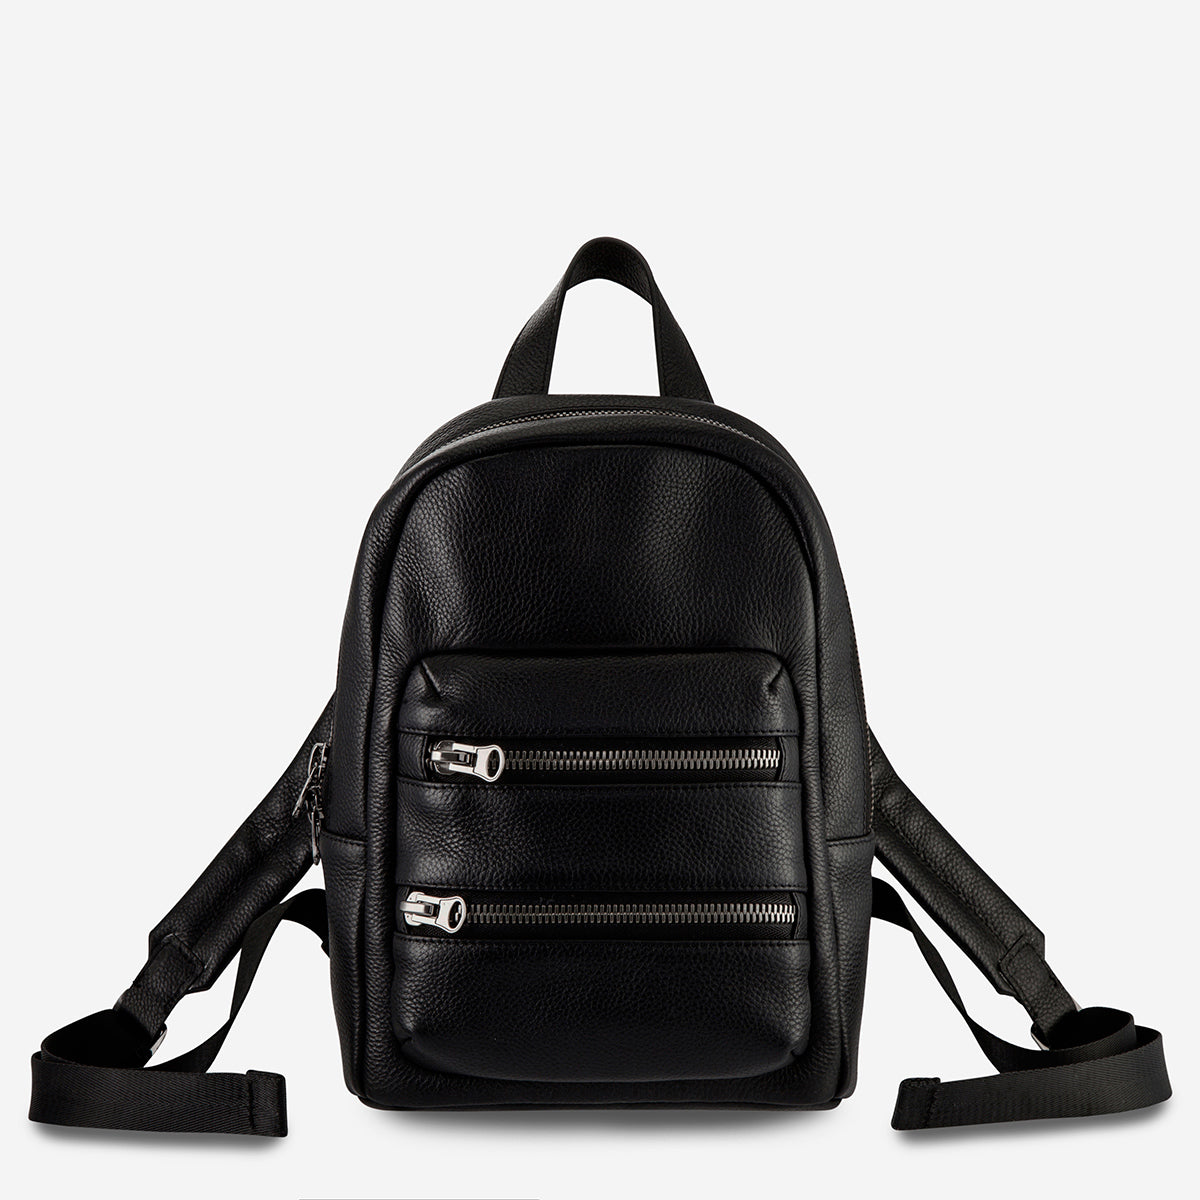 Status Anxiety Racketeer Women's Leather Backpack Black